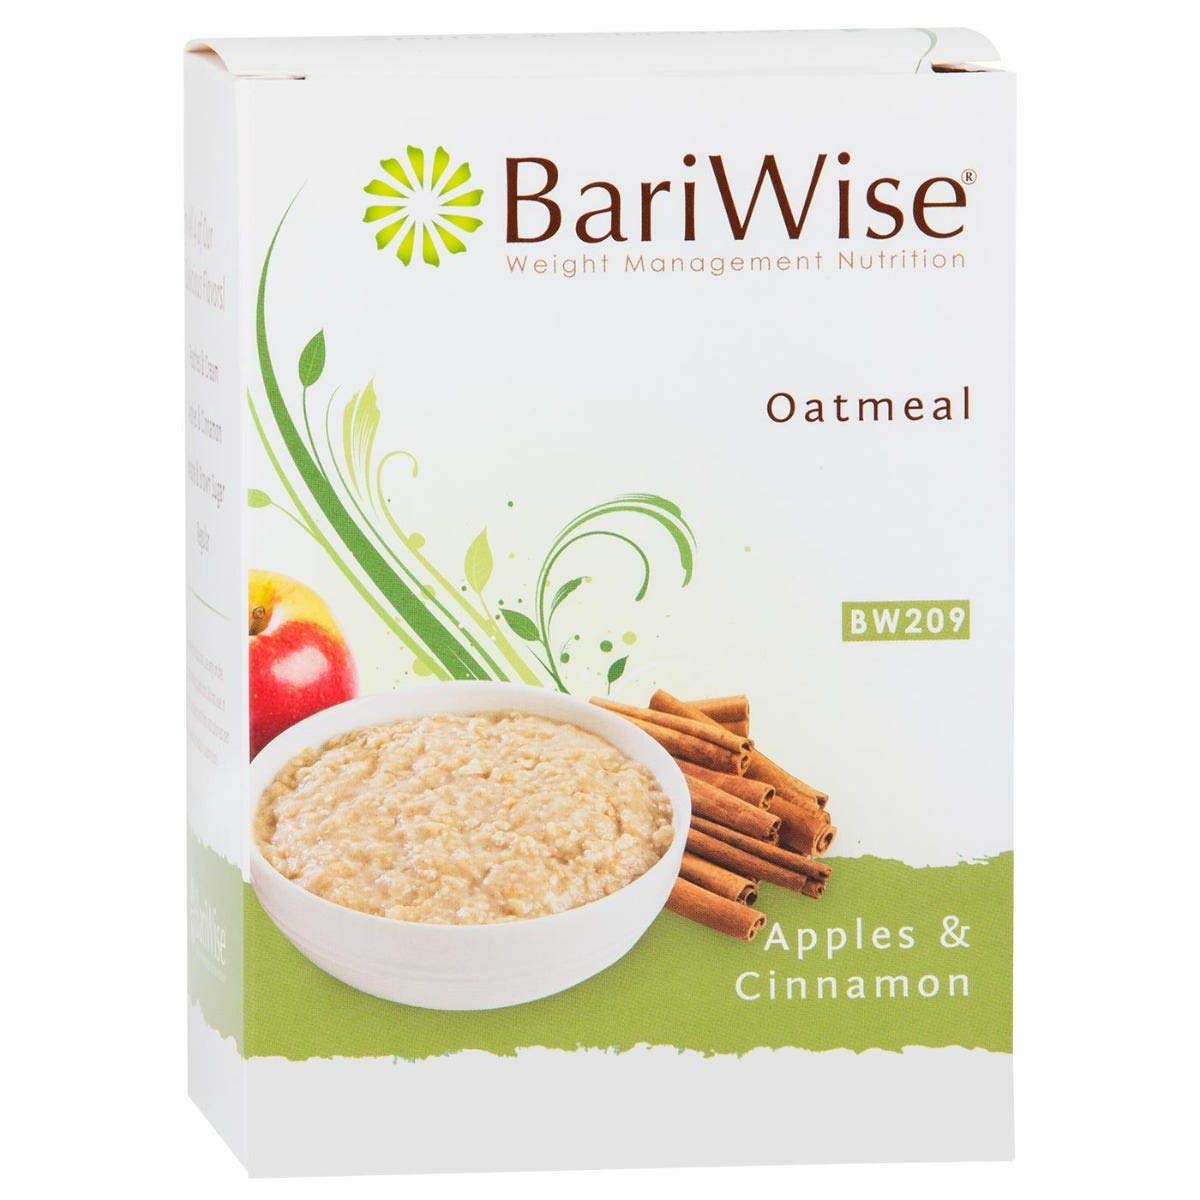 BariWise Low-Carb High Protein Oatmeal / Instant Diet Hot Oatmeals - Apples & Cinnamon (7 Servings/Box) - Low Carb, Low Calorie, Low Fat, Aspartame Free